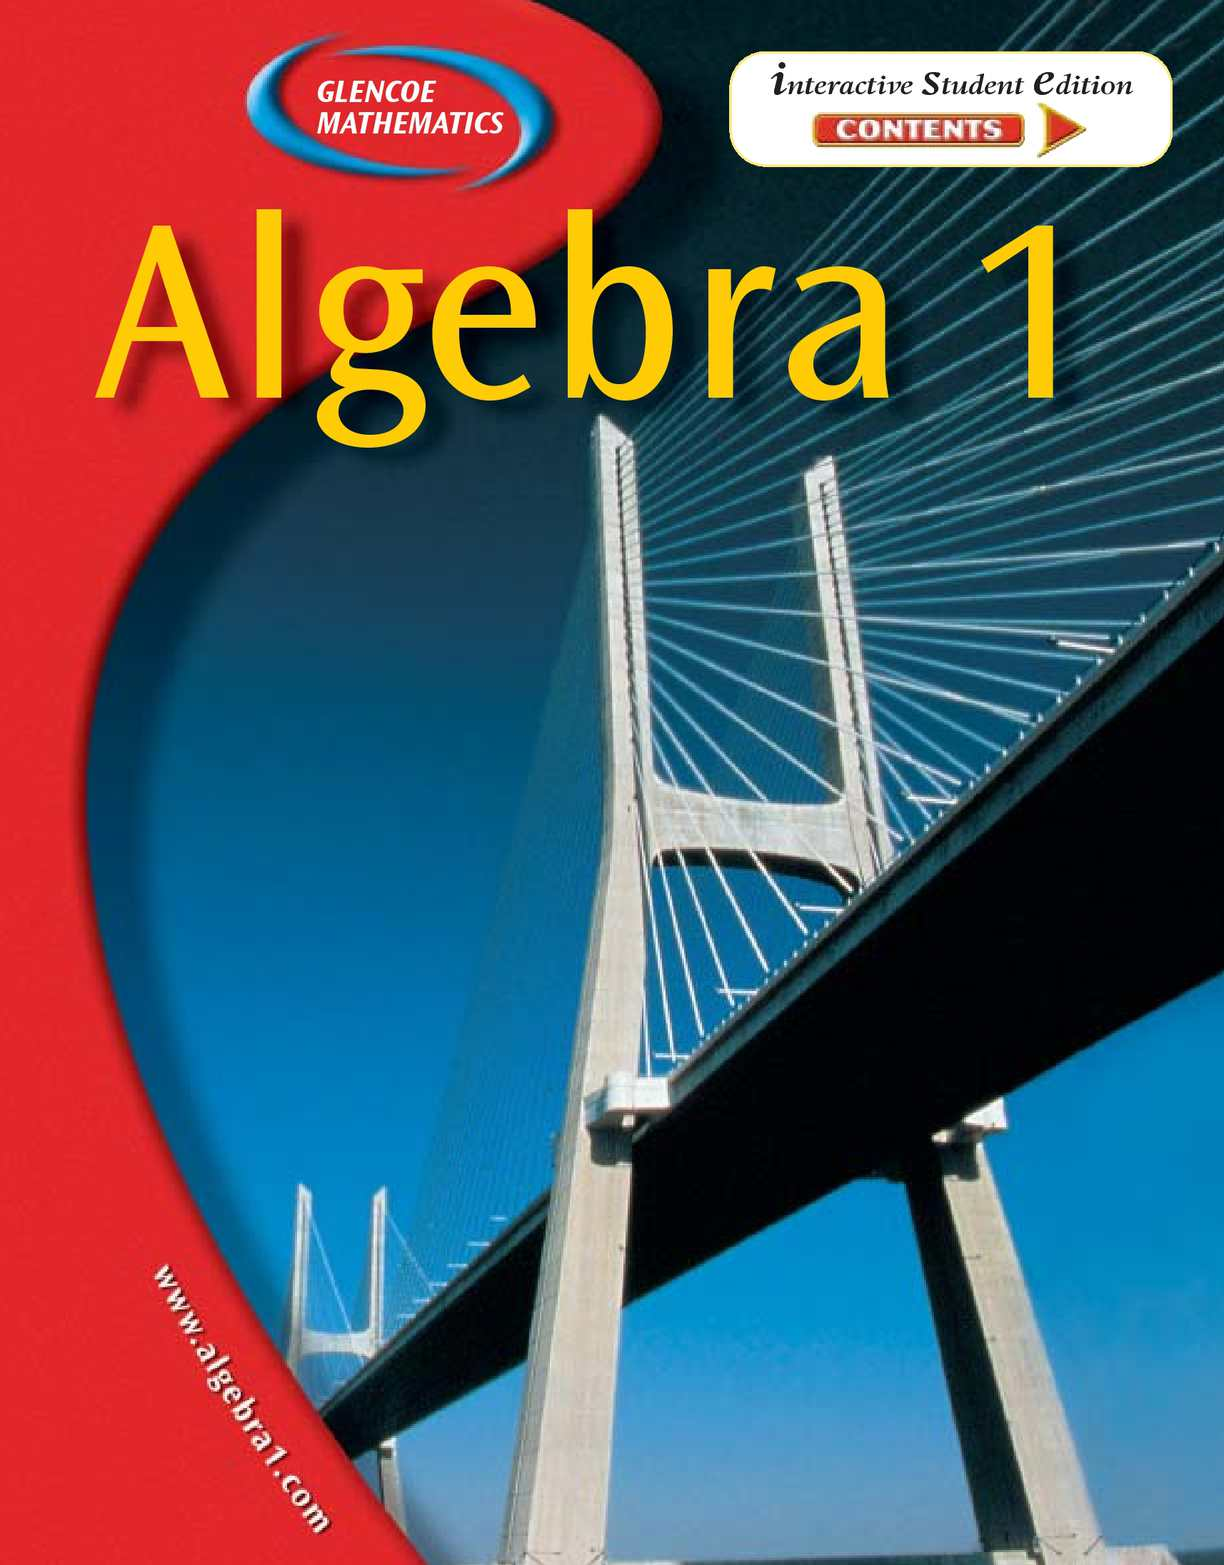 worksheet Glencoe Algebra 1 Worksheets algebra 1 mcgraw hill